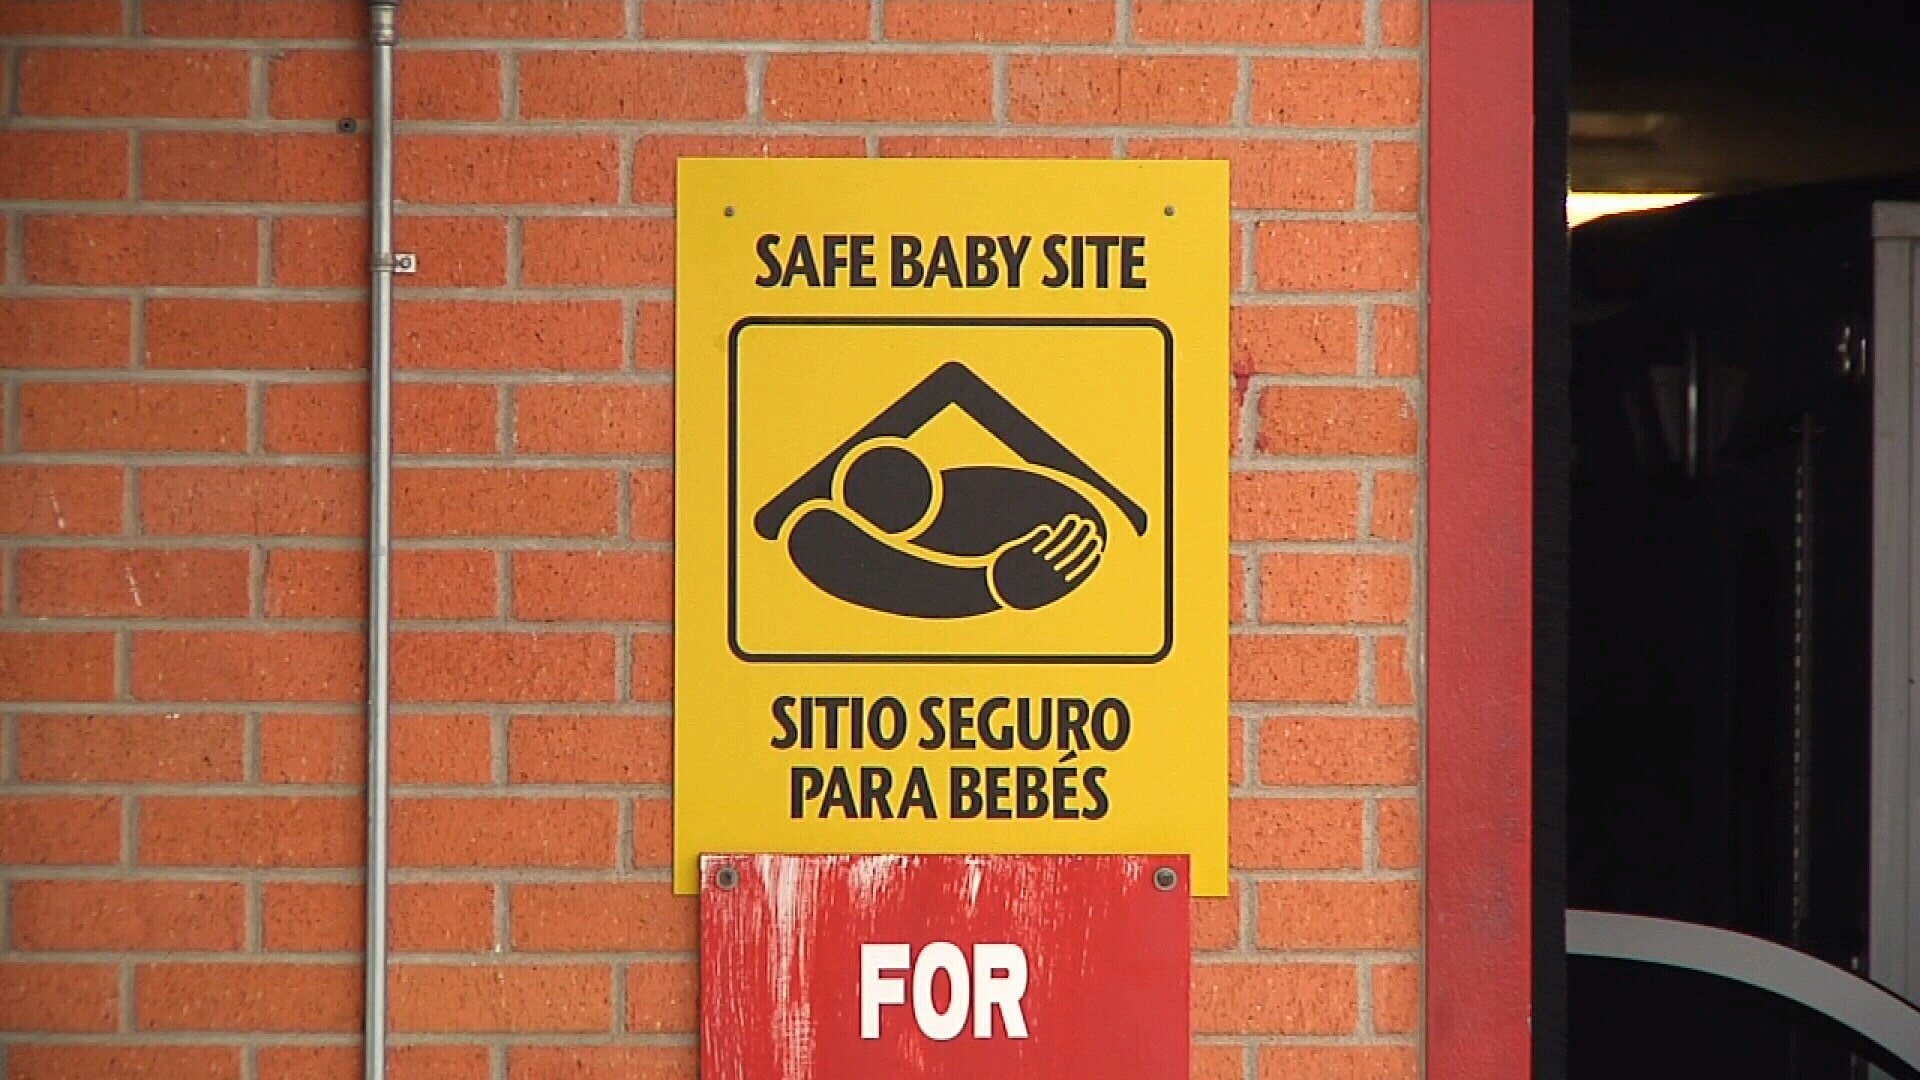 Officials say an infant was left on a hospital bench this morning under the Safe Haven Law.